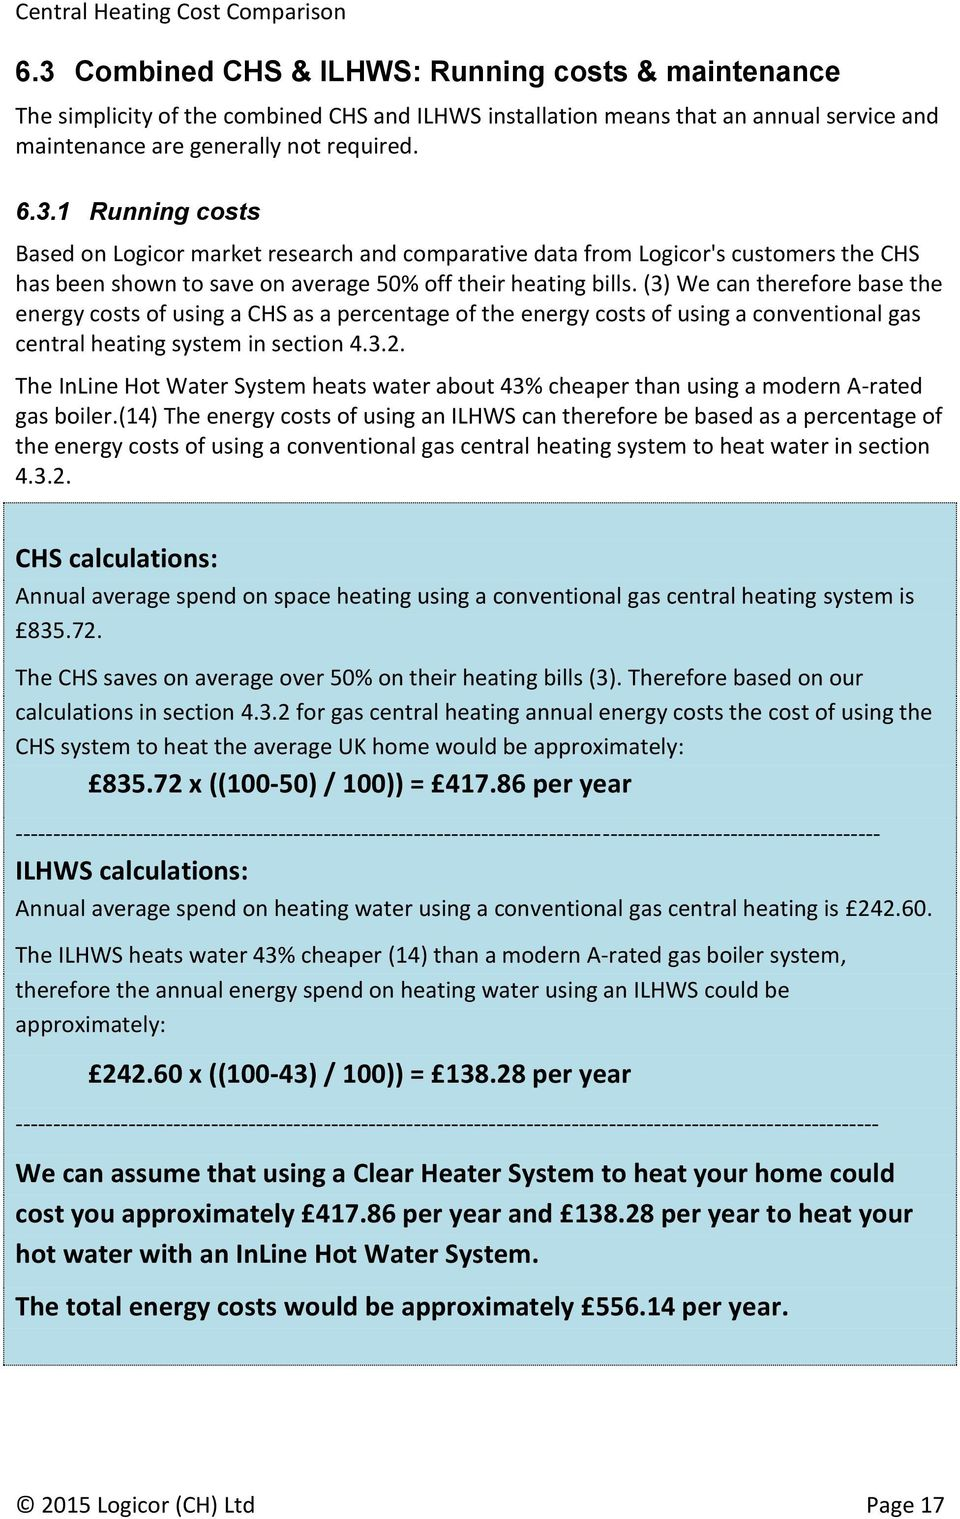 Central Heating Cost Comparison - PDF